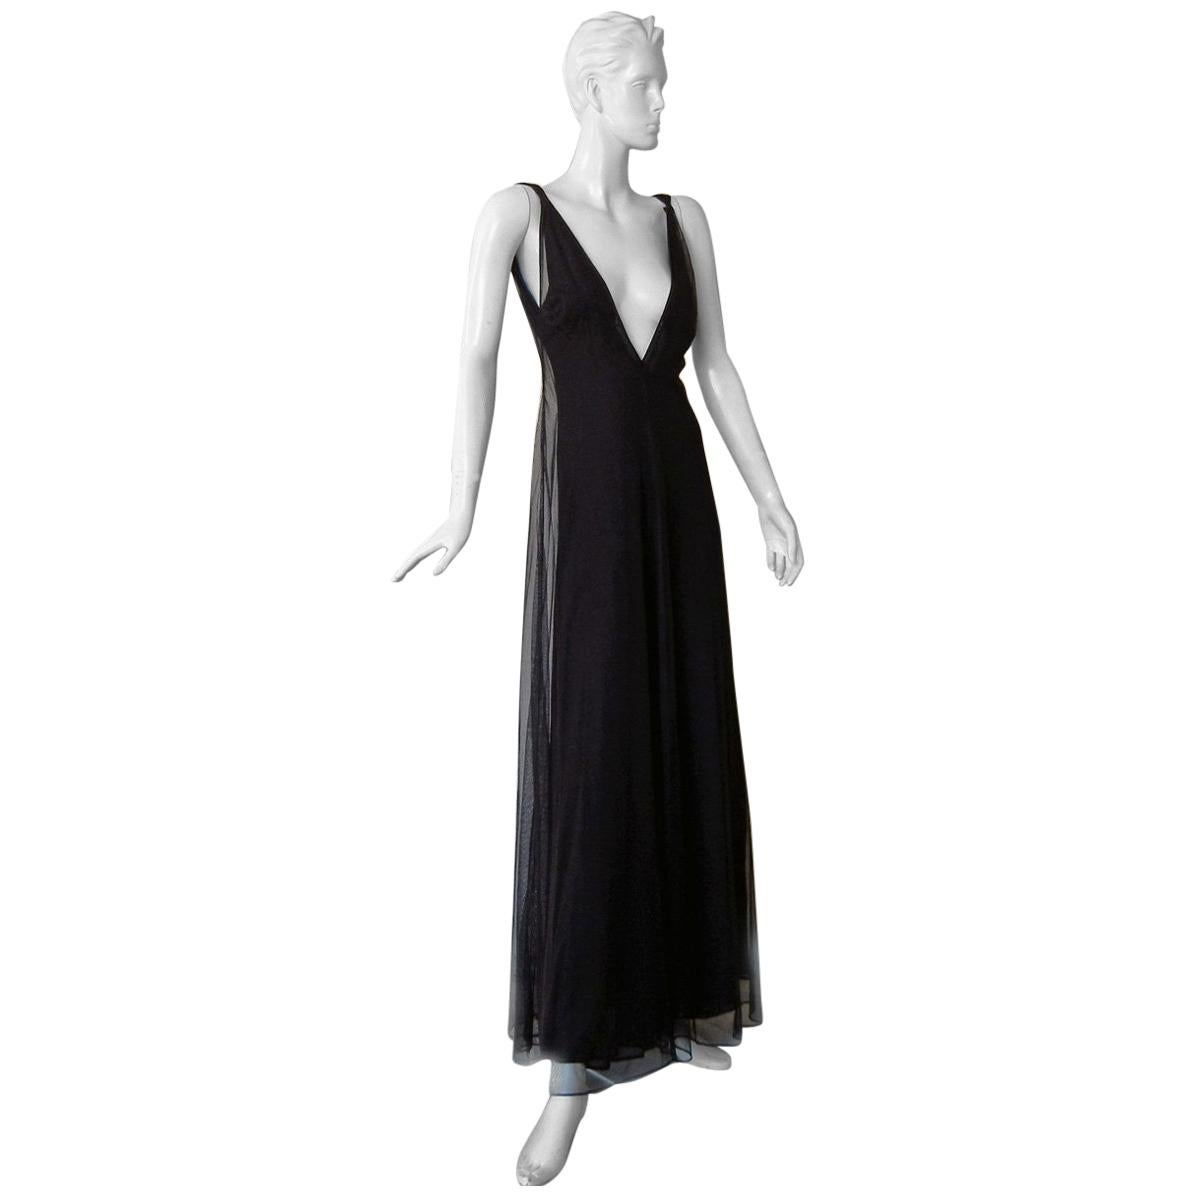 Gucci NWT 1998 Plunging Neckline Ethereal Dress Gown   Rare from this collection